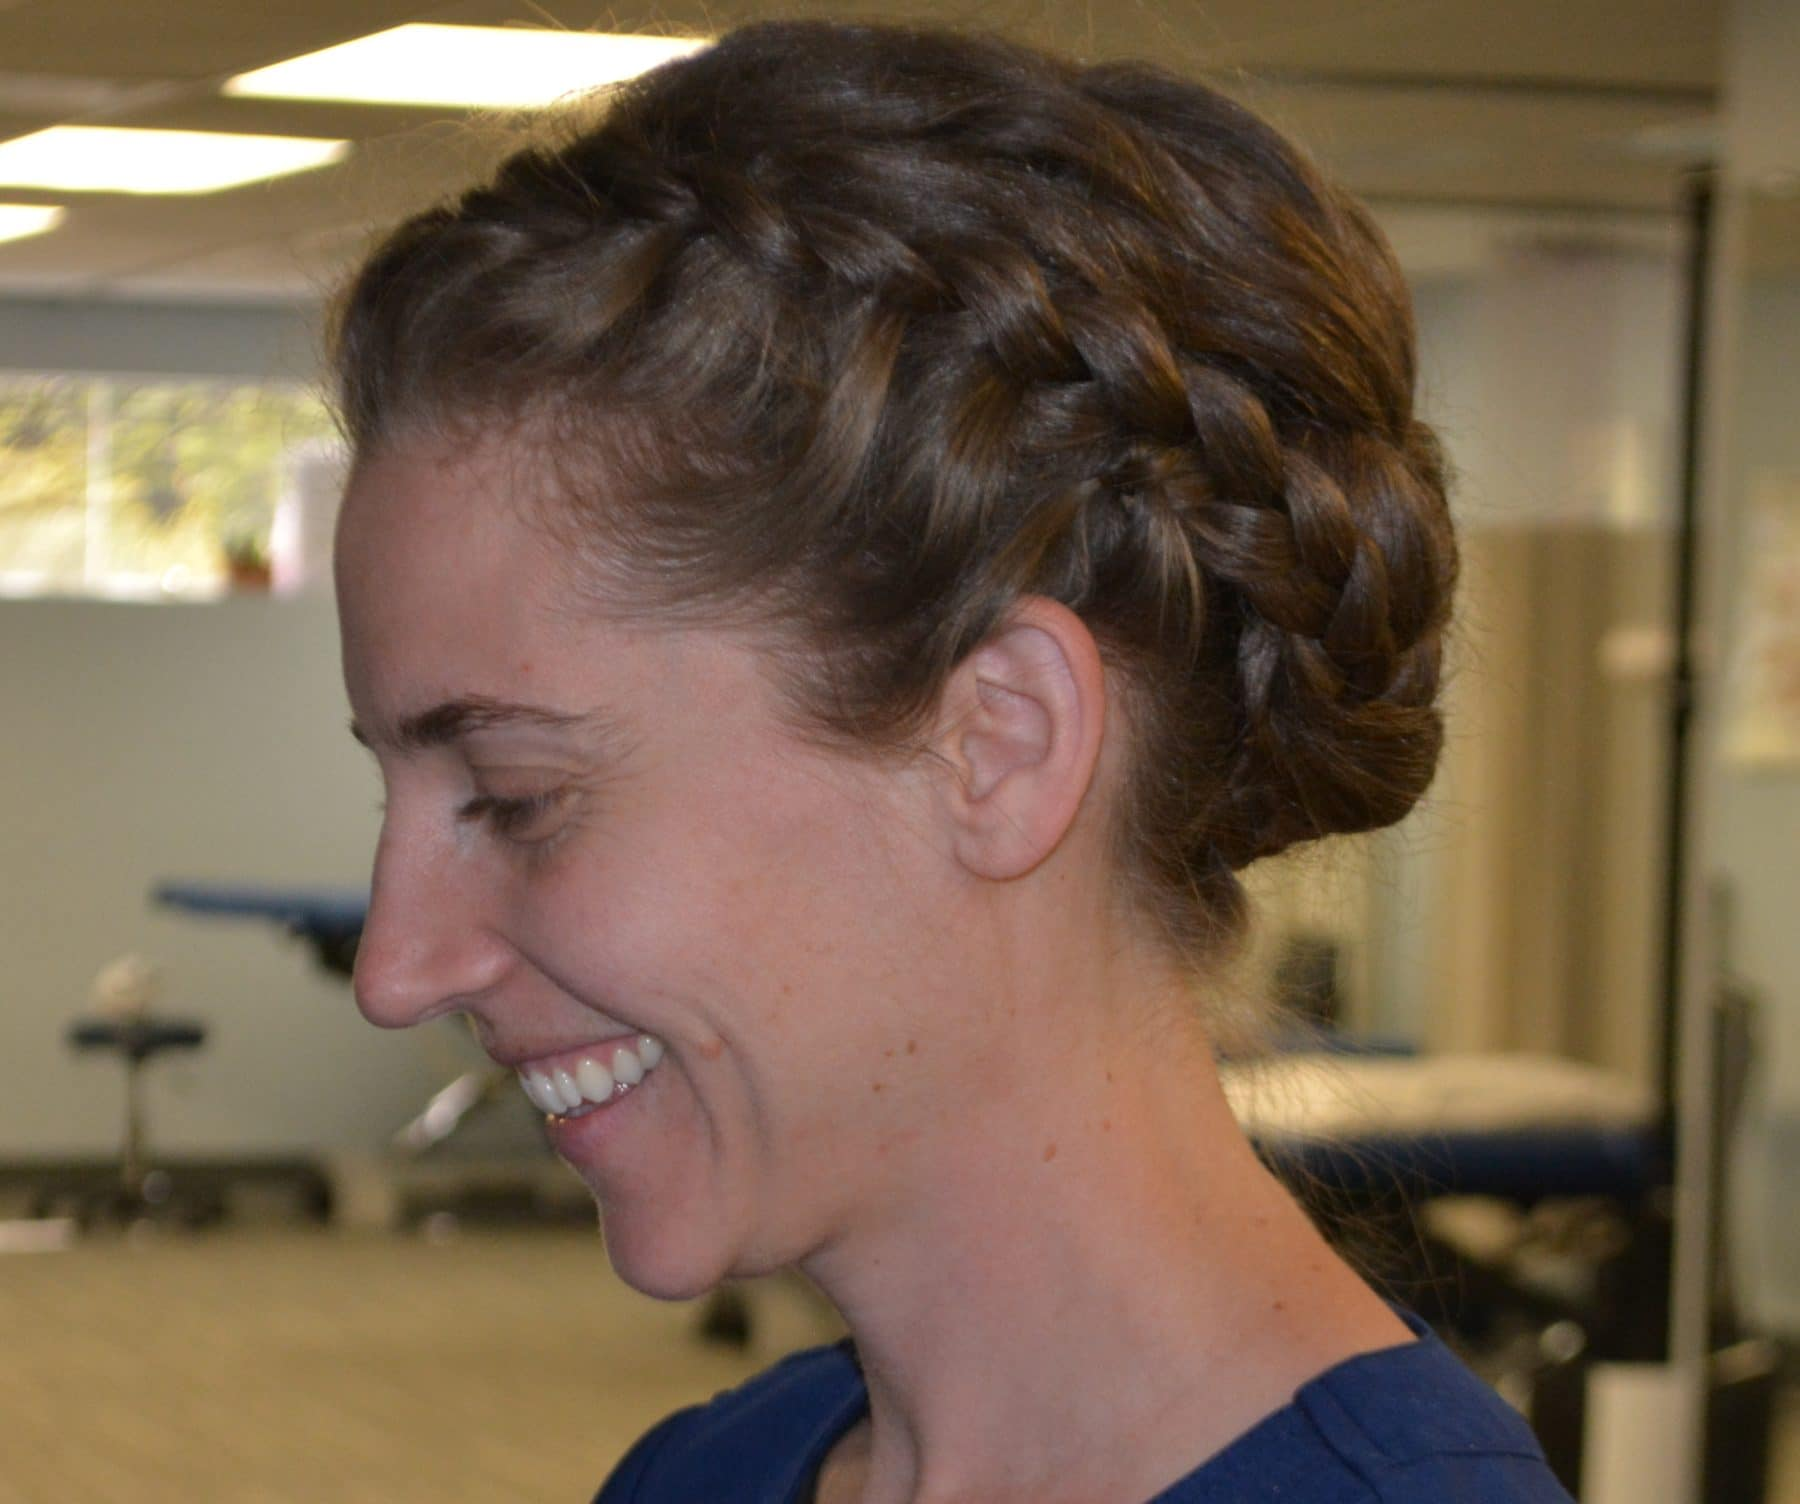 Greater buffalo physical therapy - Sarah Bottazzi